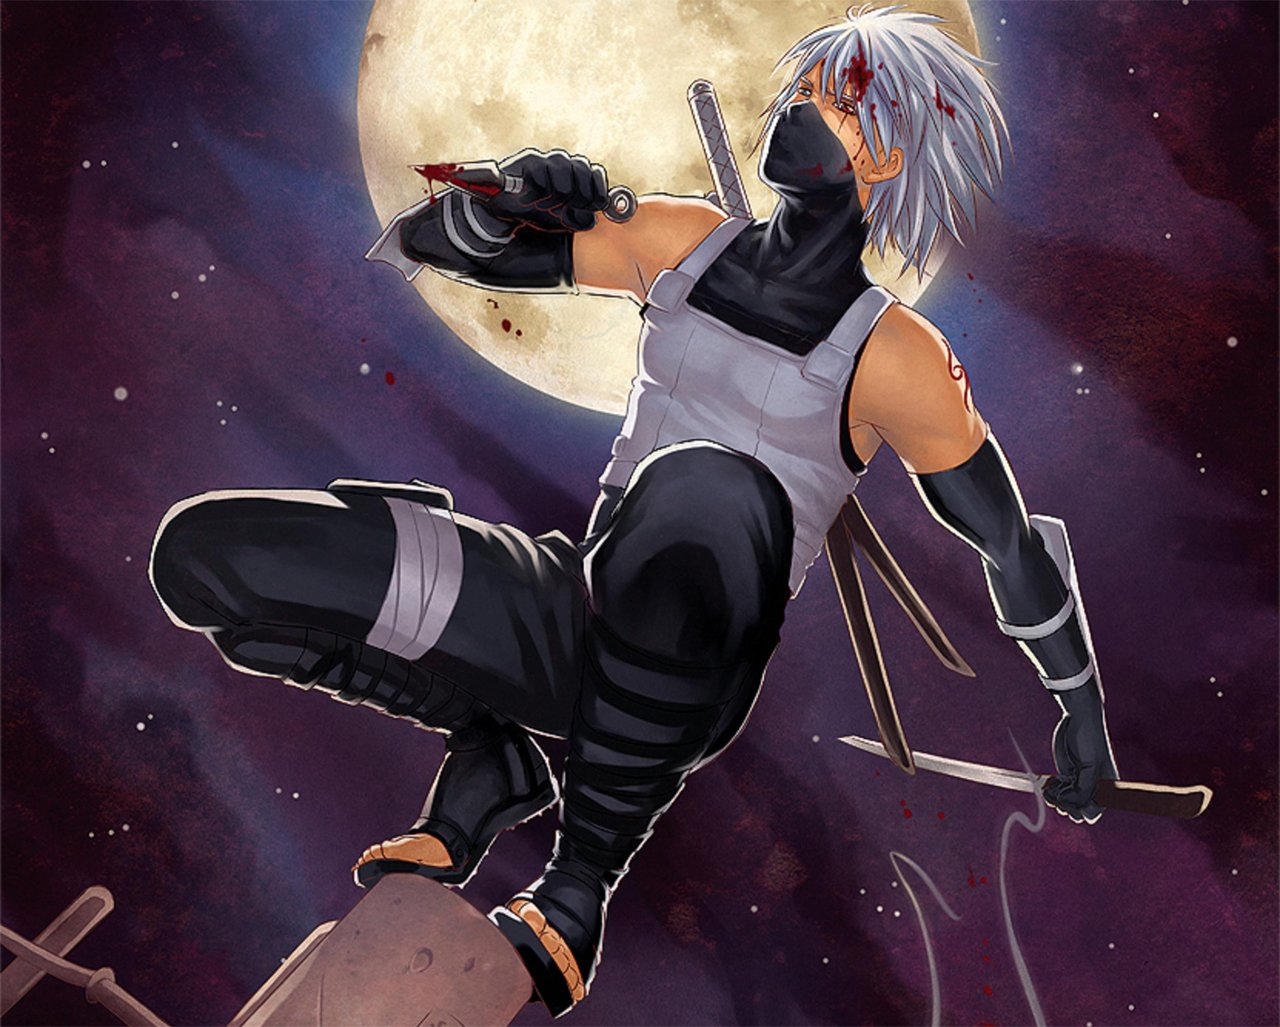 Anbu Kakashi Hatake Katana Kunai Blood Anime Konoha Ninja HD Wallpaper 1280x1027